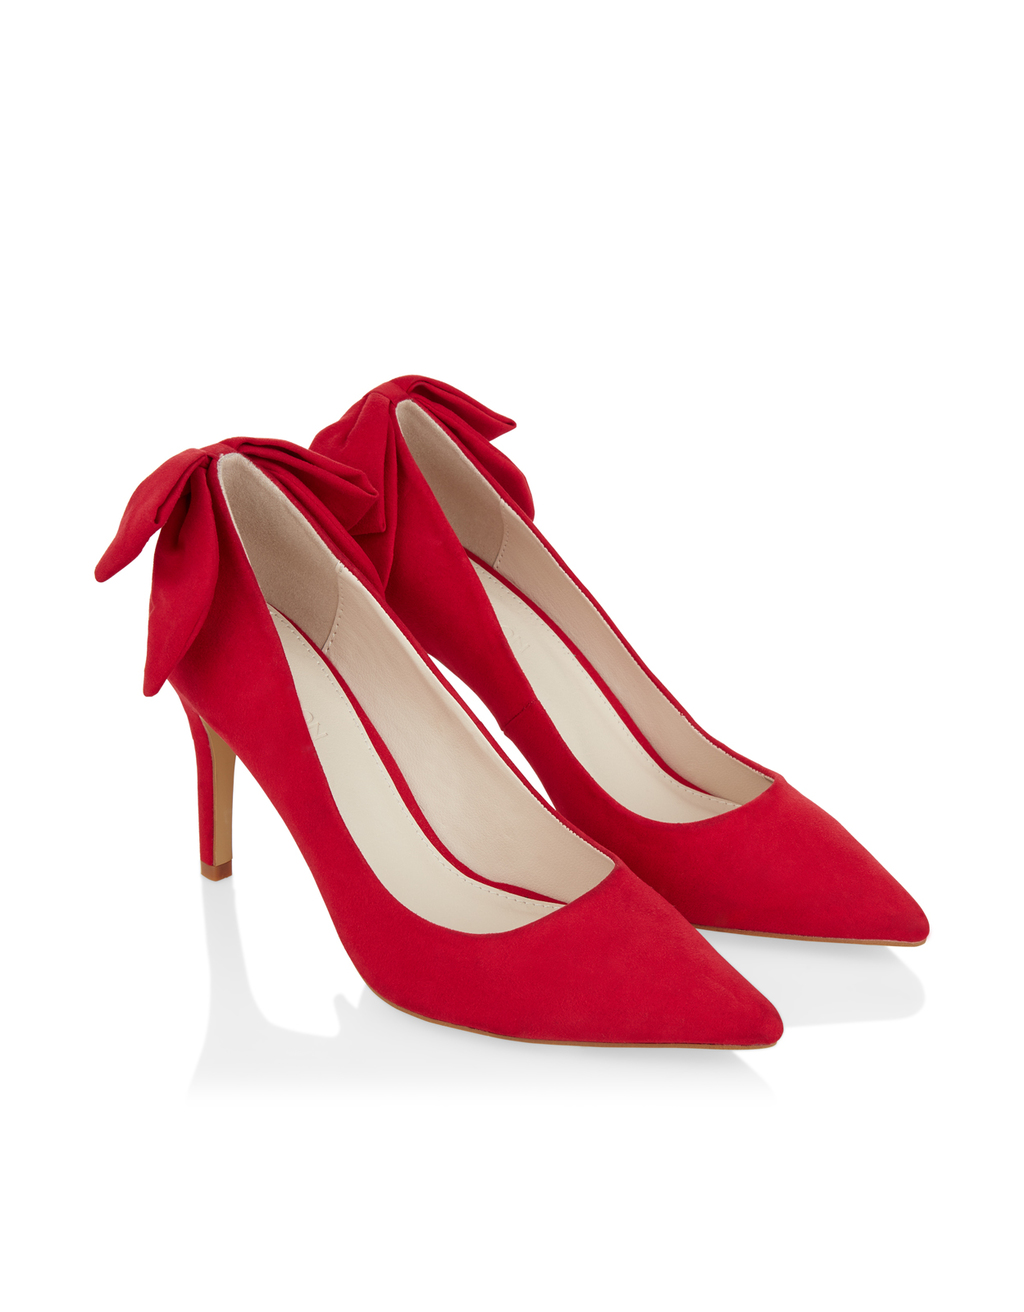 Arcelia Bow Shoe - predominant colour: true red; occasions: evening, occasion, creative work; material: suede; heel height: high; heel: stiletto; toe: pointed toe; style: courts; finish: plain; pattern: plain; embellishment: bow; season: a/w 2016; wardrobe: highlight